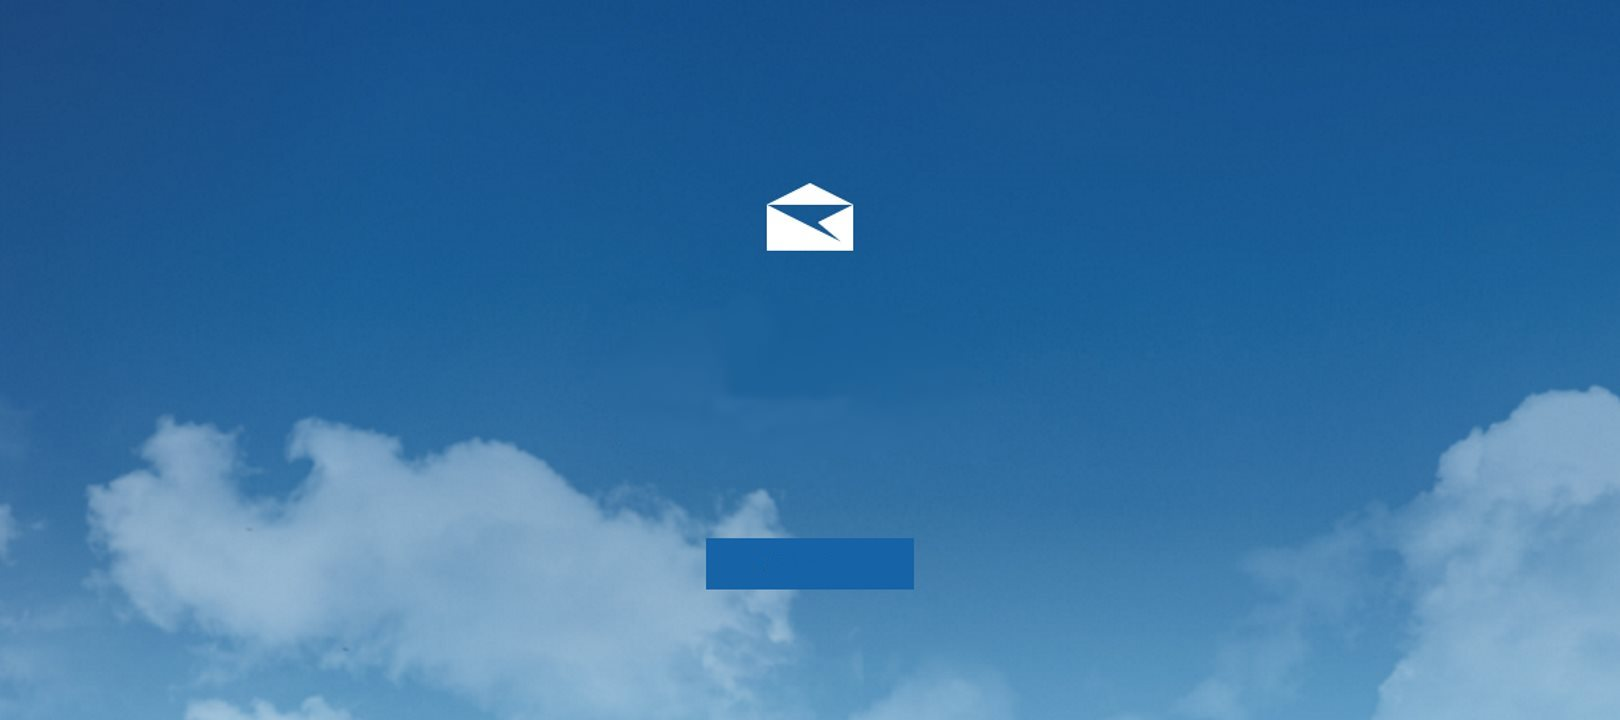 E mail client background image - How Do I Check My Email Part One Hosted Email On Windows 10 Mail Heart Internet Blog Focusing On All Aspects Of The Web